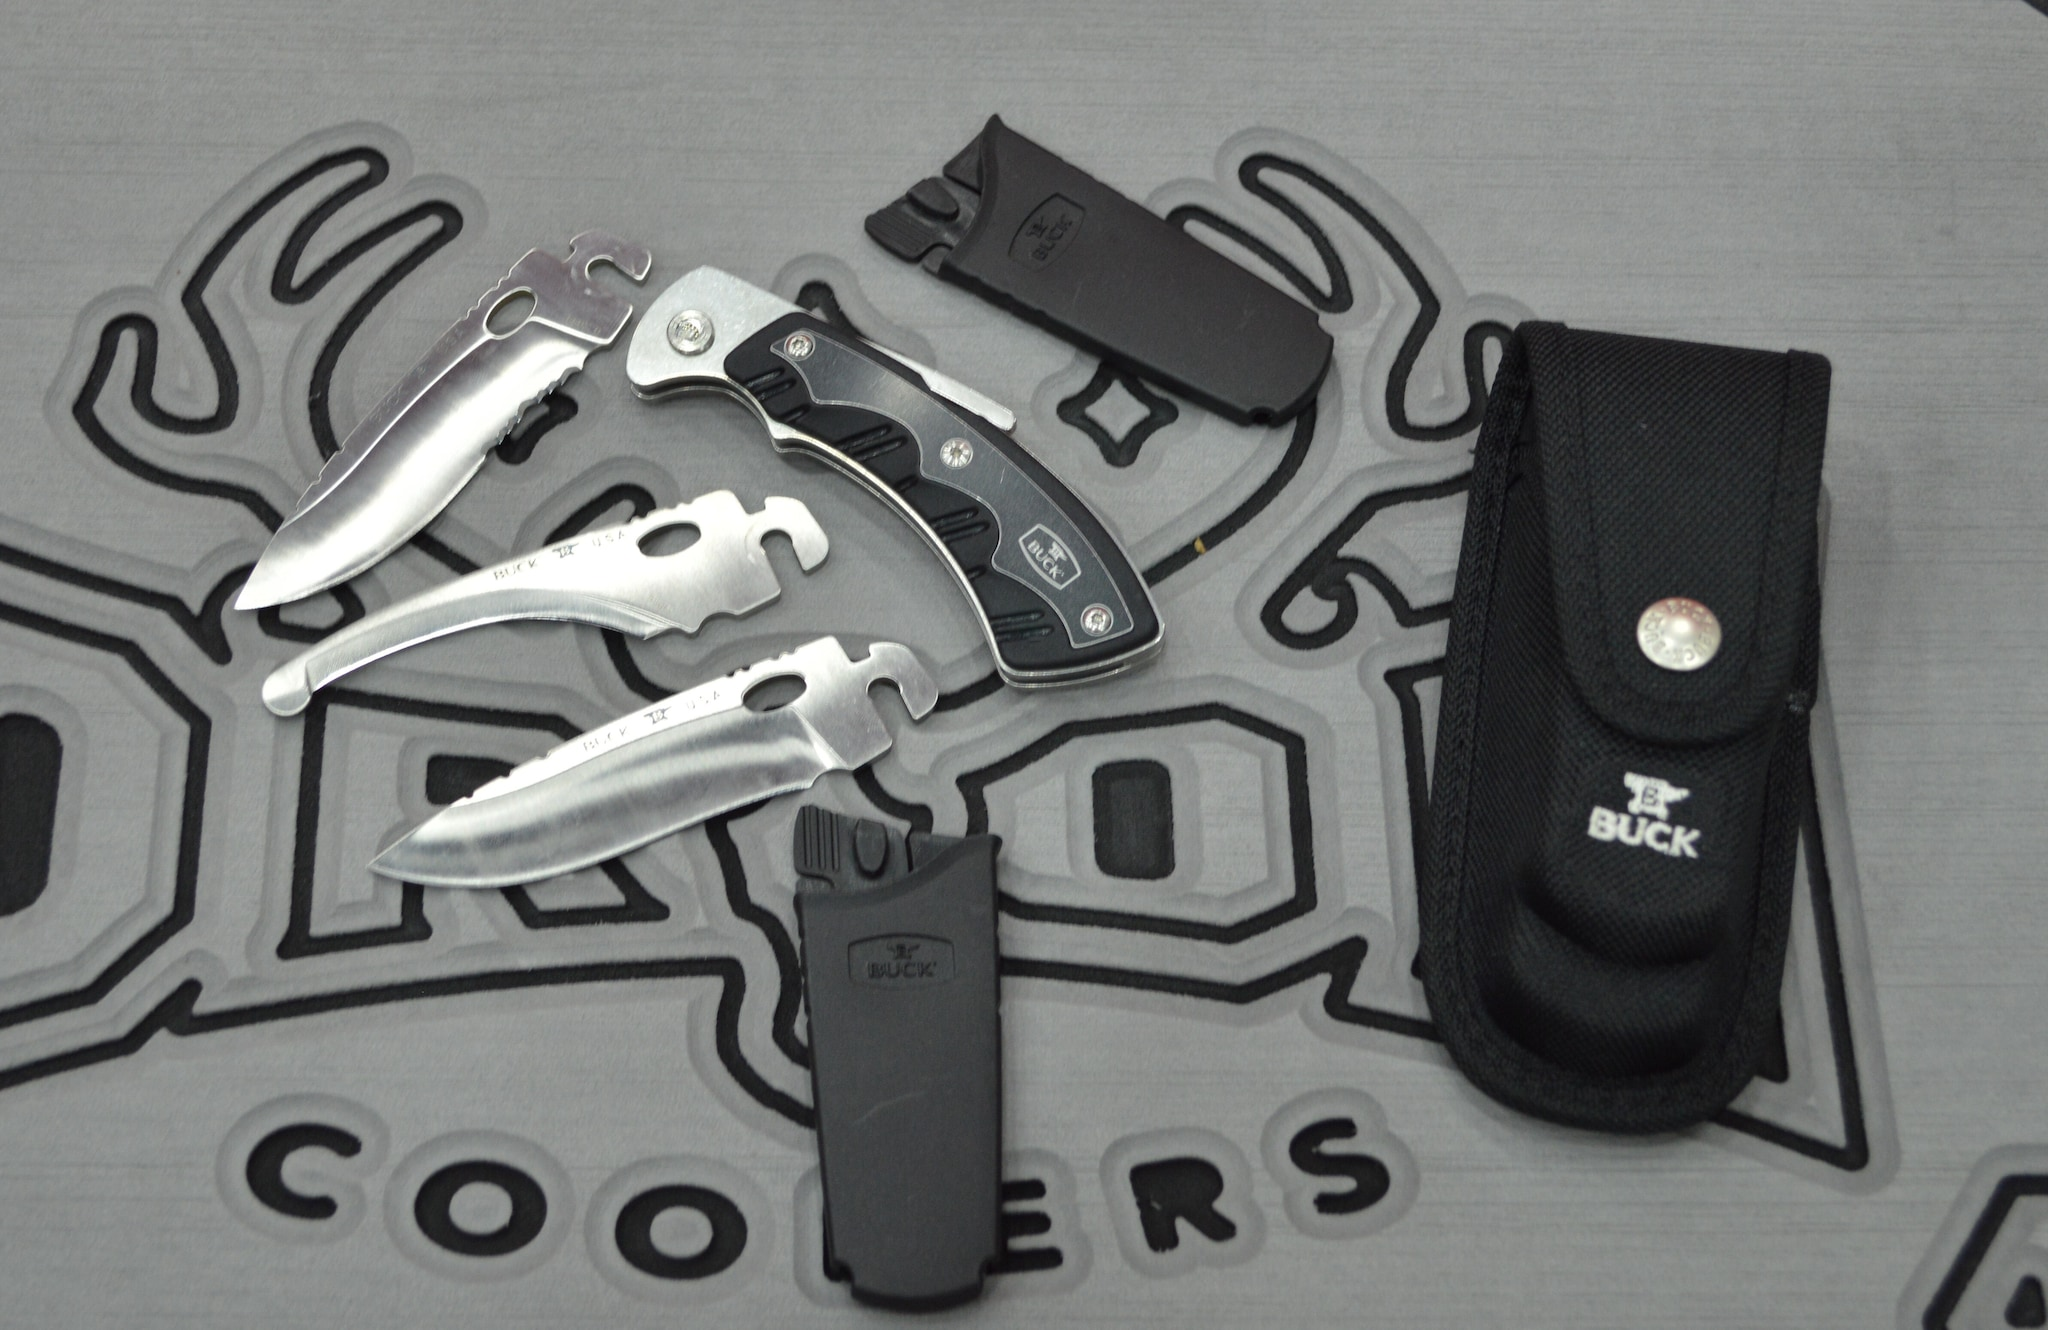 Buck's Selector 2.0 interchangeable-blade hunting system comes with three blade options for all hunting and game-cleaning scenarios. (Photo: Kristin Alberts)